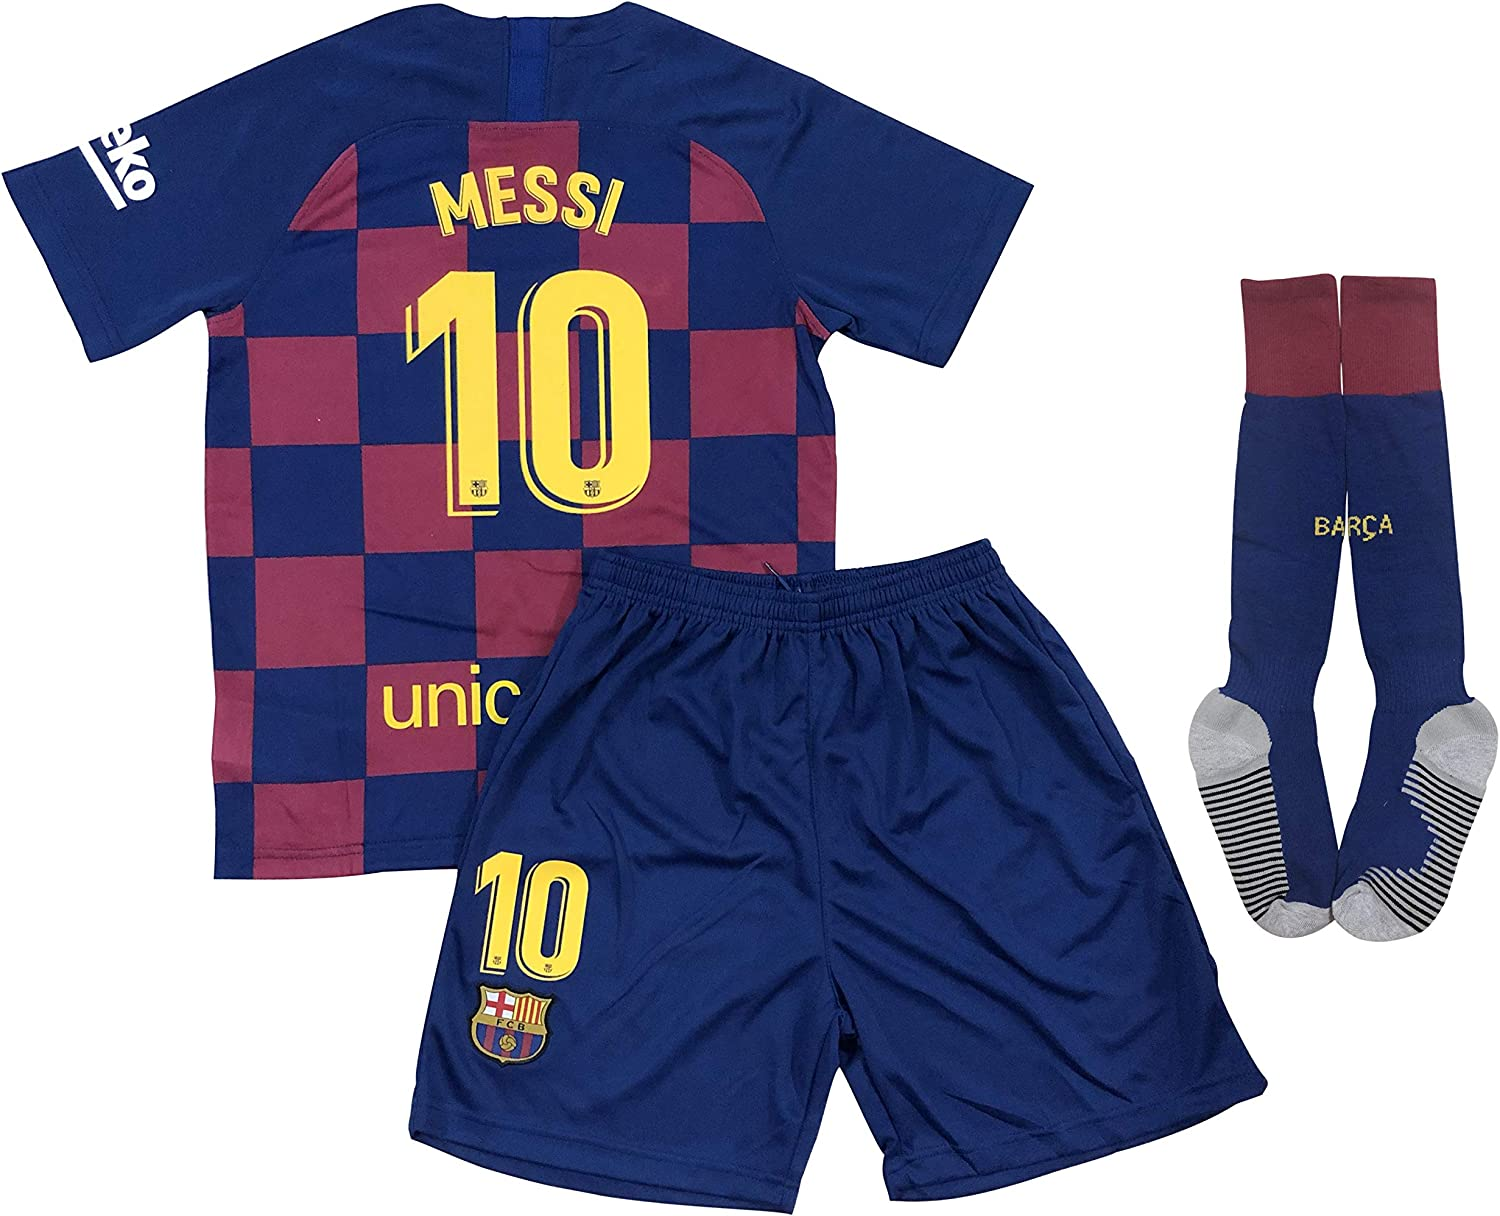 New 2020 Messi Home Jersey Shorts & Socks for Kids/Youths